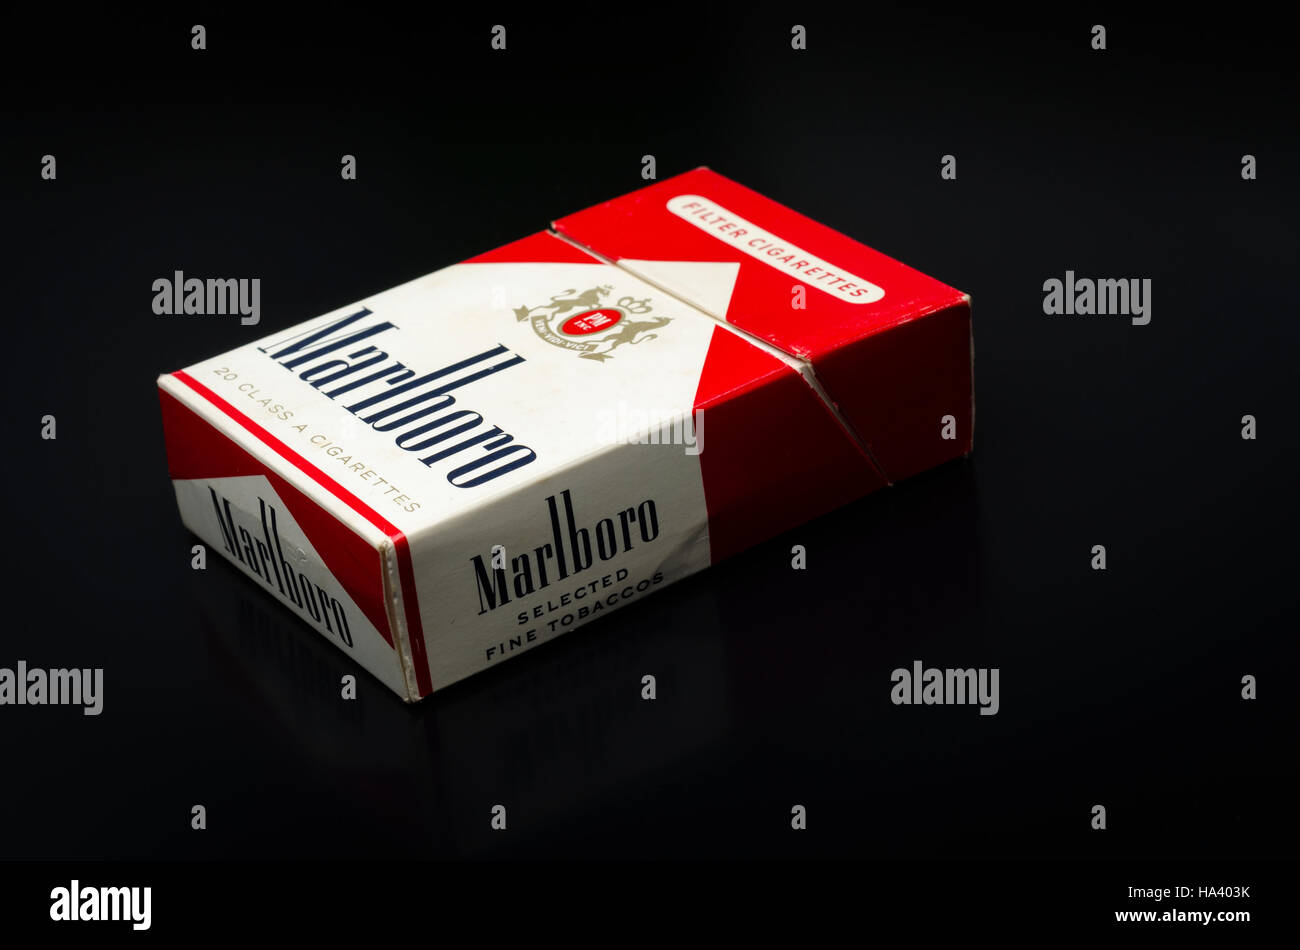 Top rated New Jersey cigarettes Marlboro